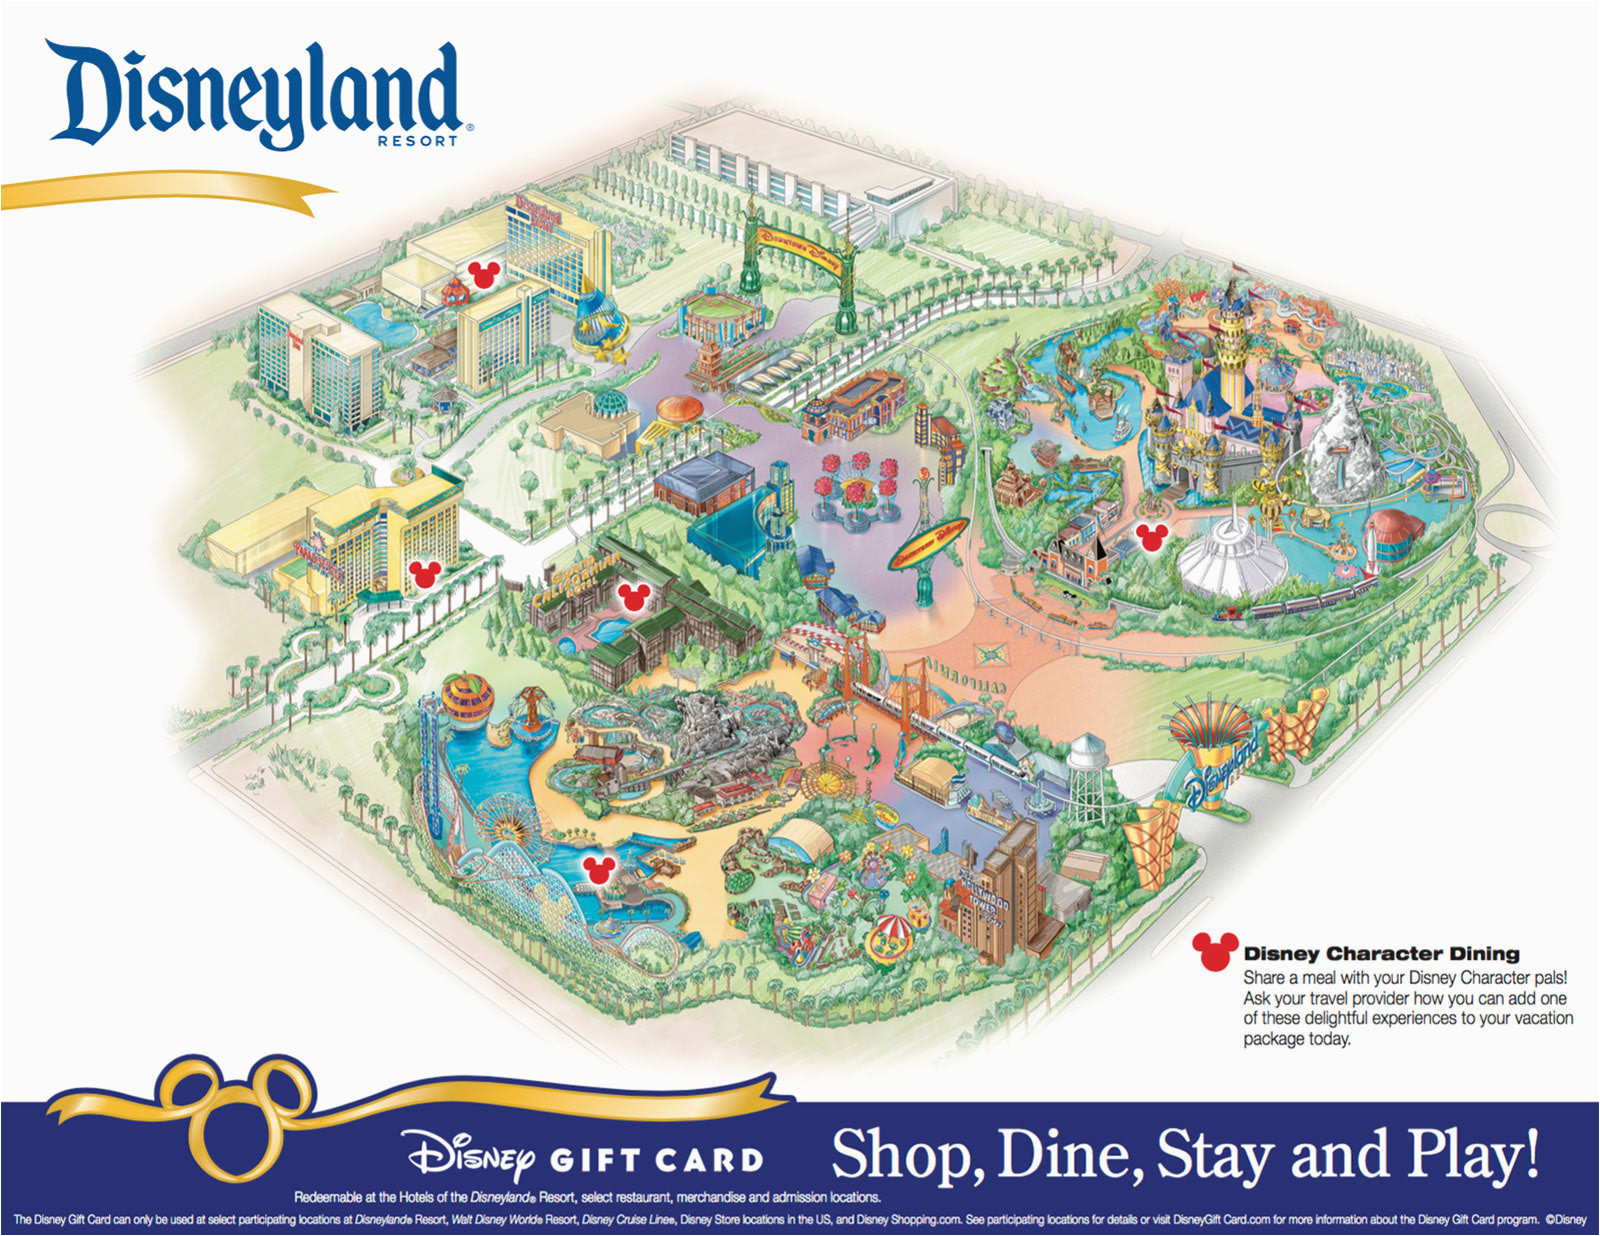 image regarding Printable Disney Maps identified as Disney Global California Map Disneyland Park California Map